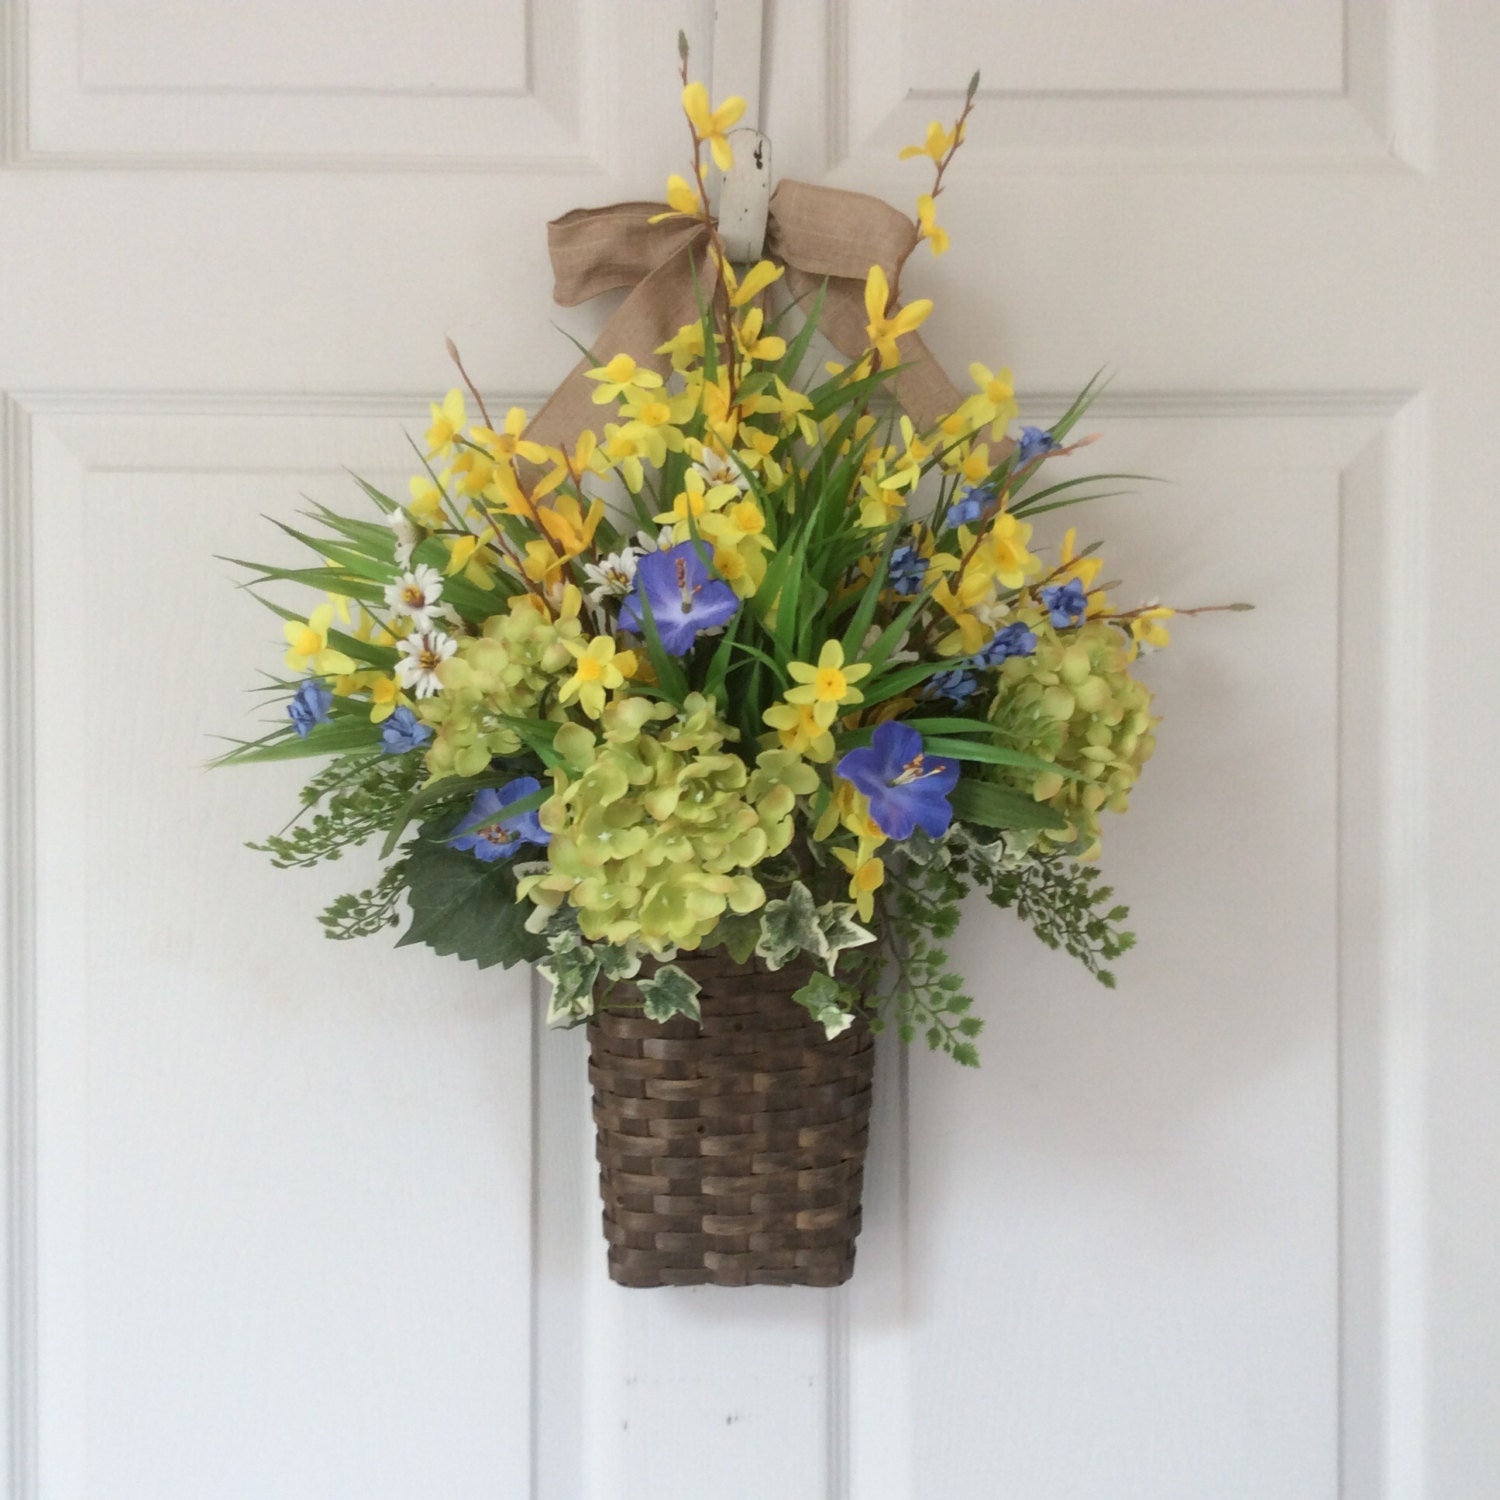 Front Door Baskets: Spring Wreath-Spring Door Basket-Summer Wreath-Spring Flower